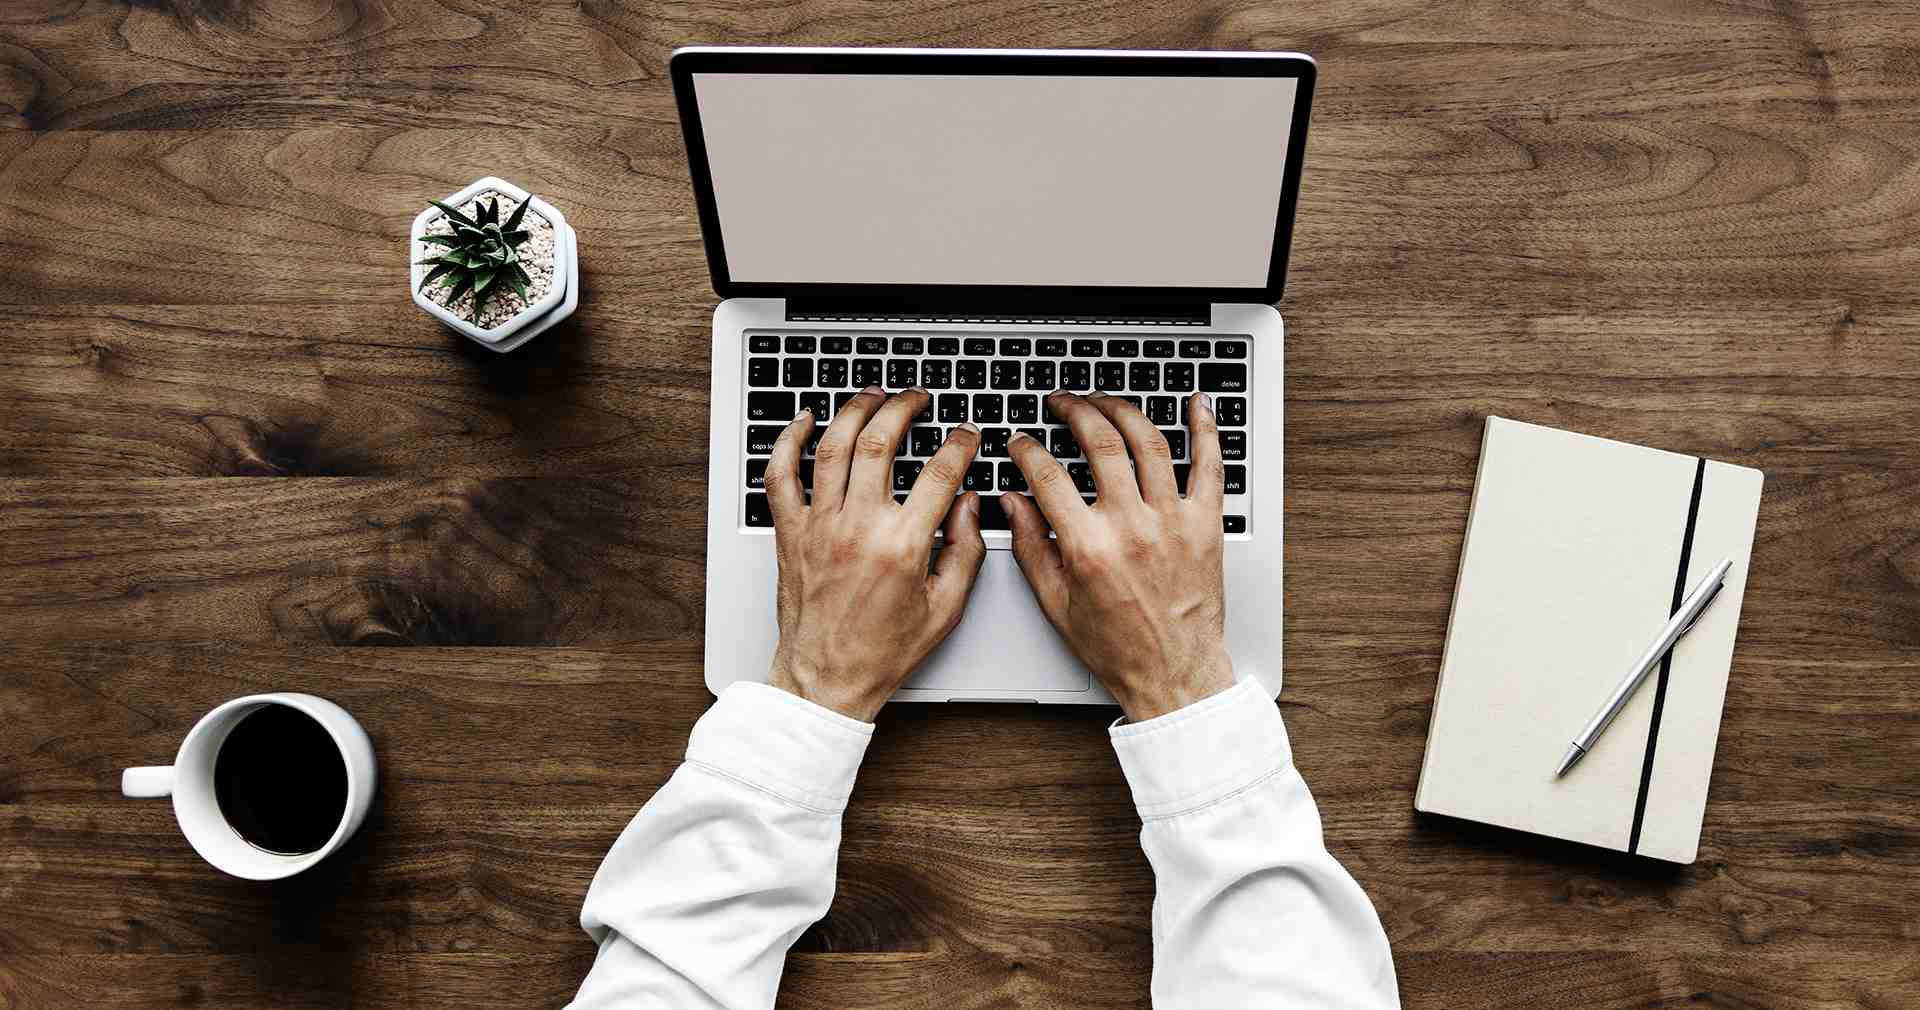 The Reibus Guide: 5 Tips for Becoming a Successful Remote Worker